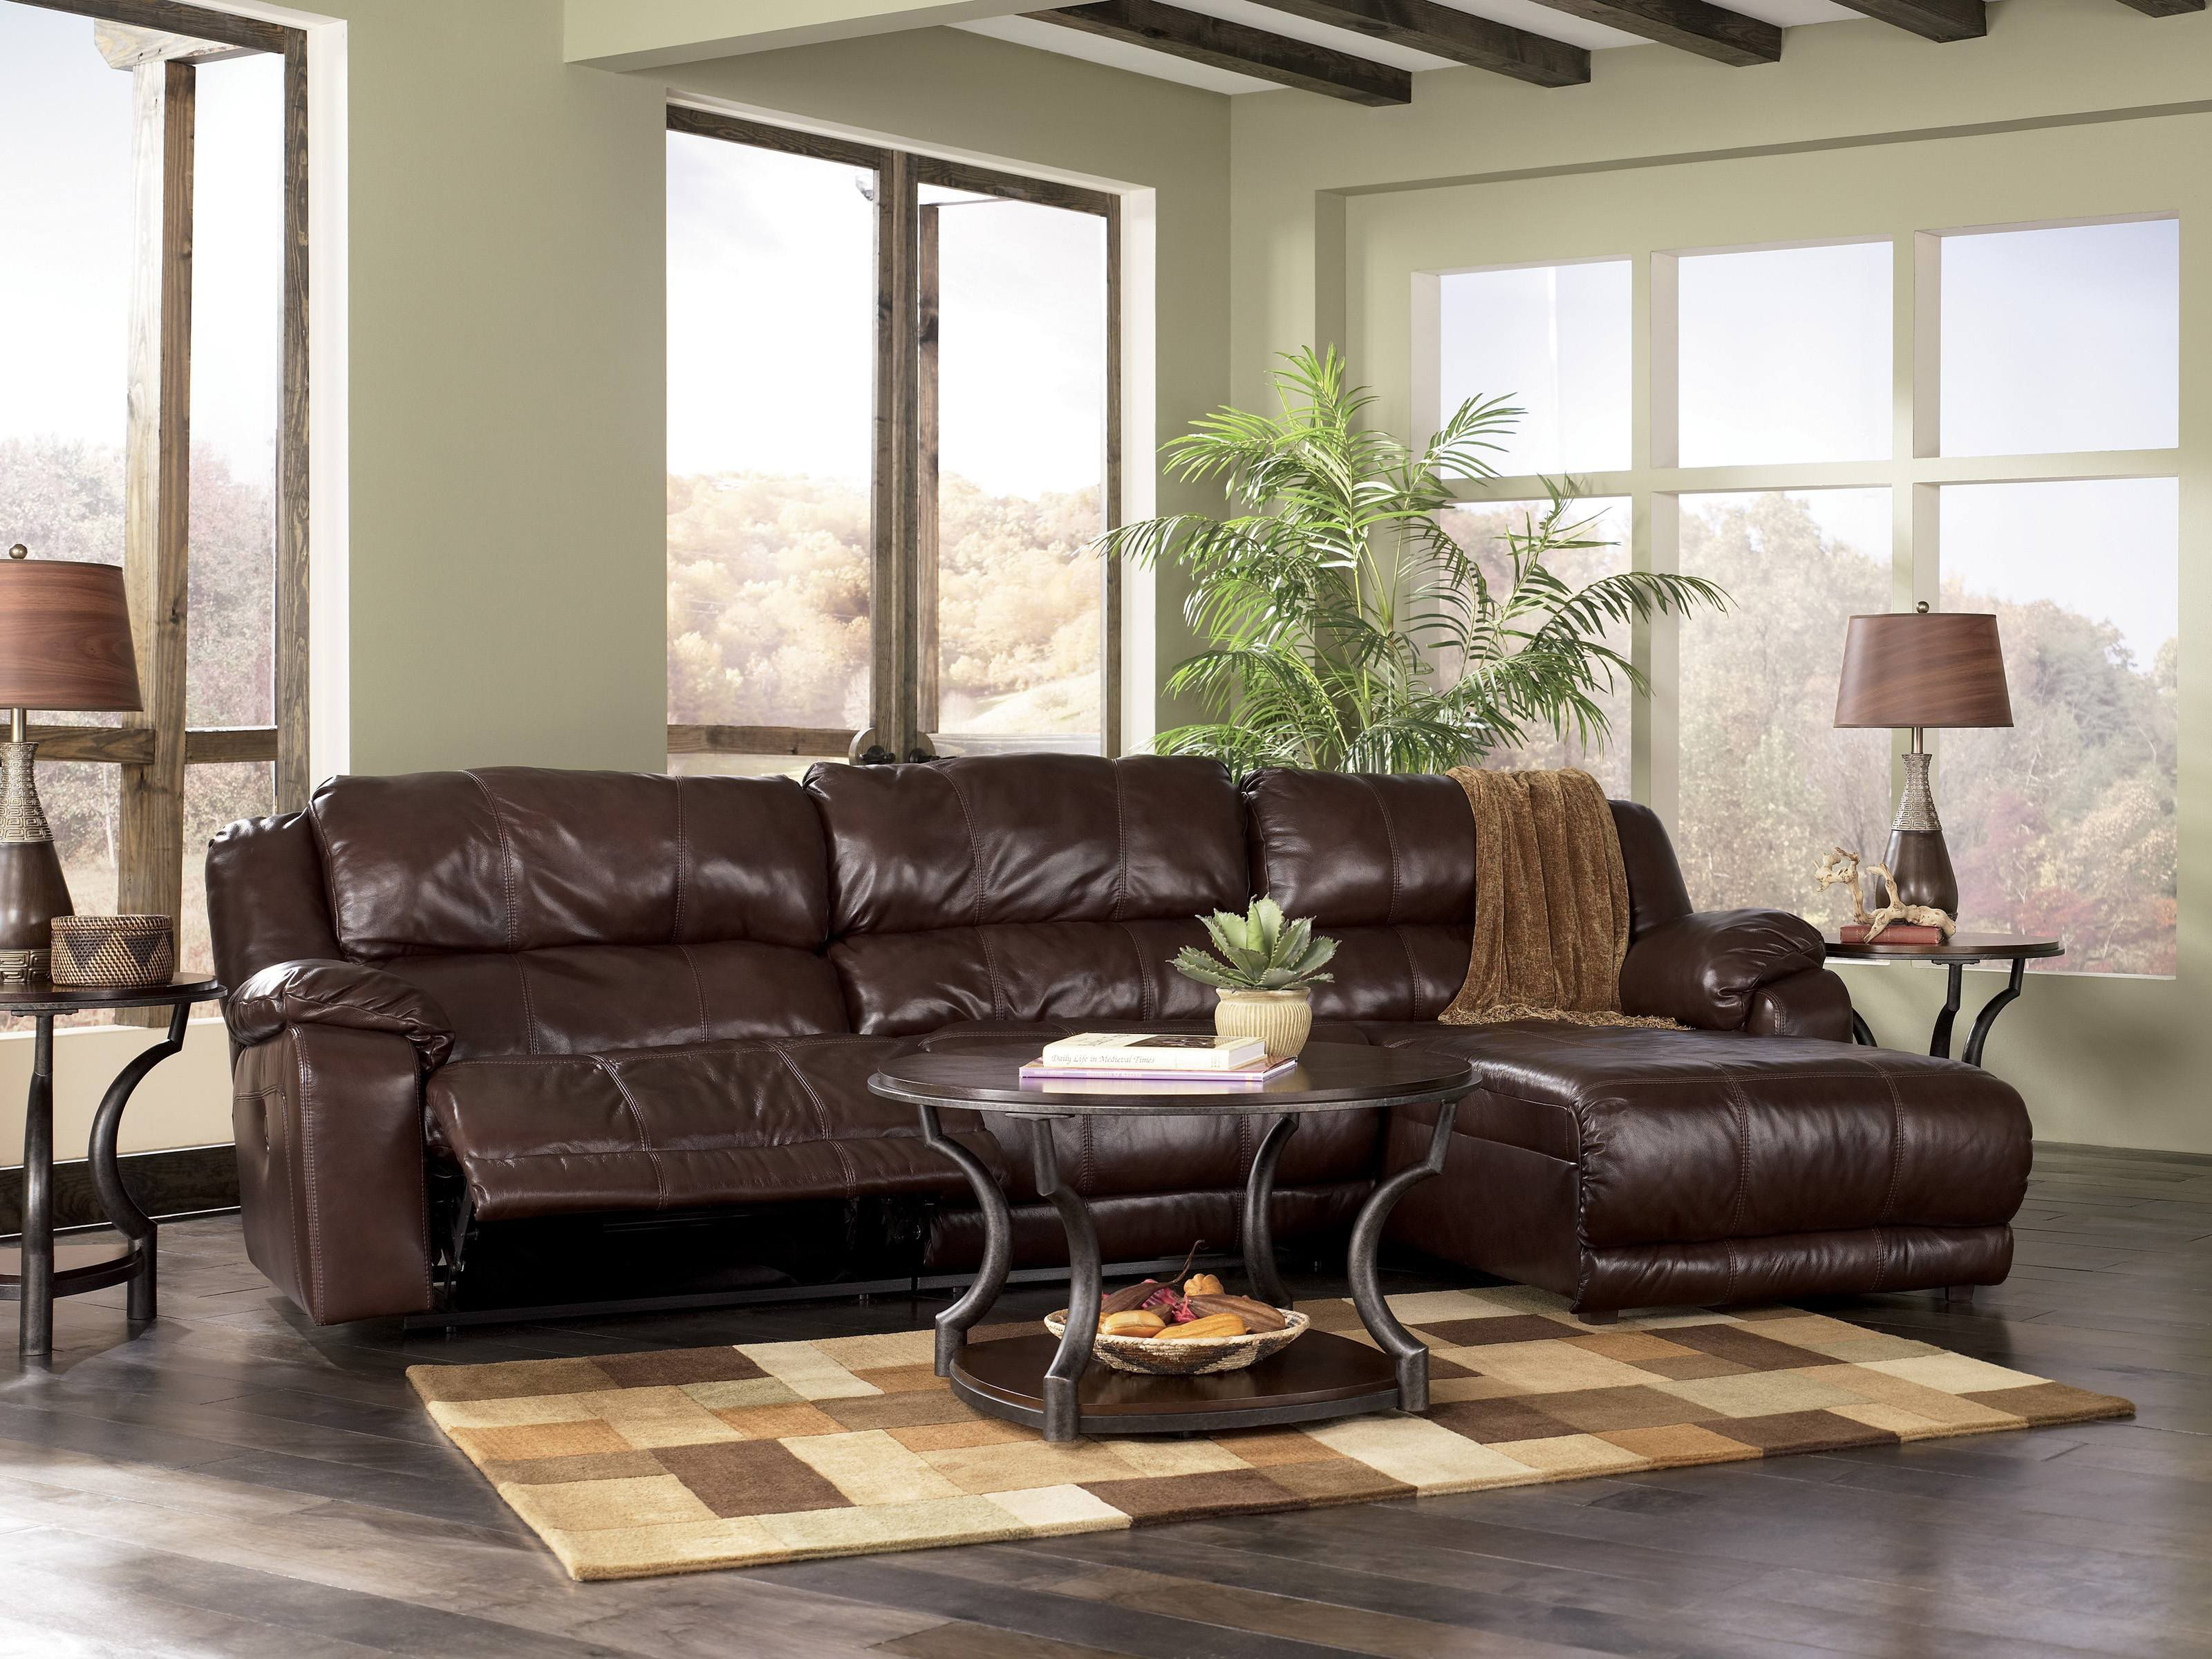 Sectional Sofas with Recliners | Johnson Leather Sofa with Recliner and Chaise | Sectional Couches . & Sectional Sofas with Recliners | Johnson Leather Sofa with ... islam-shia.org